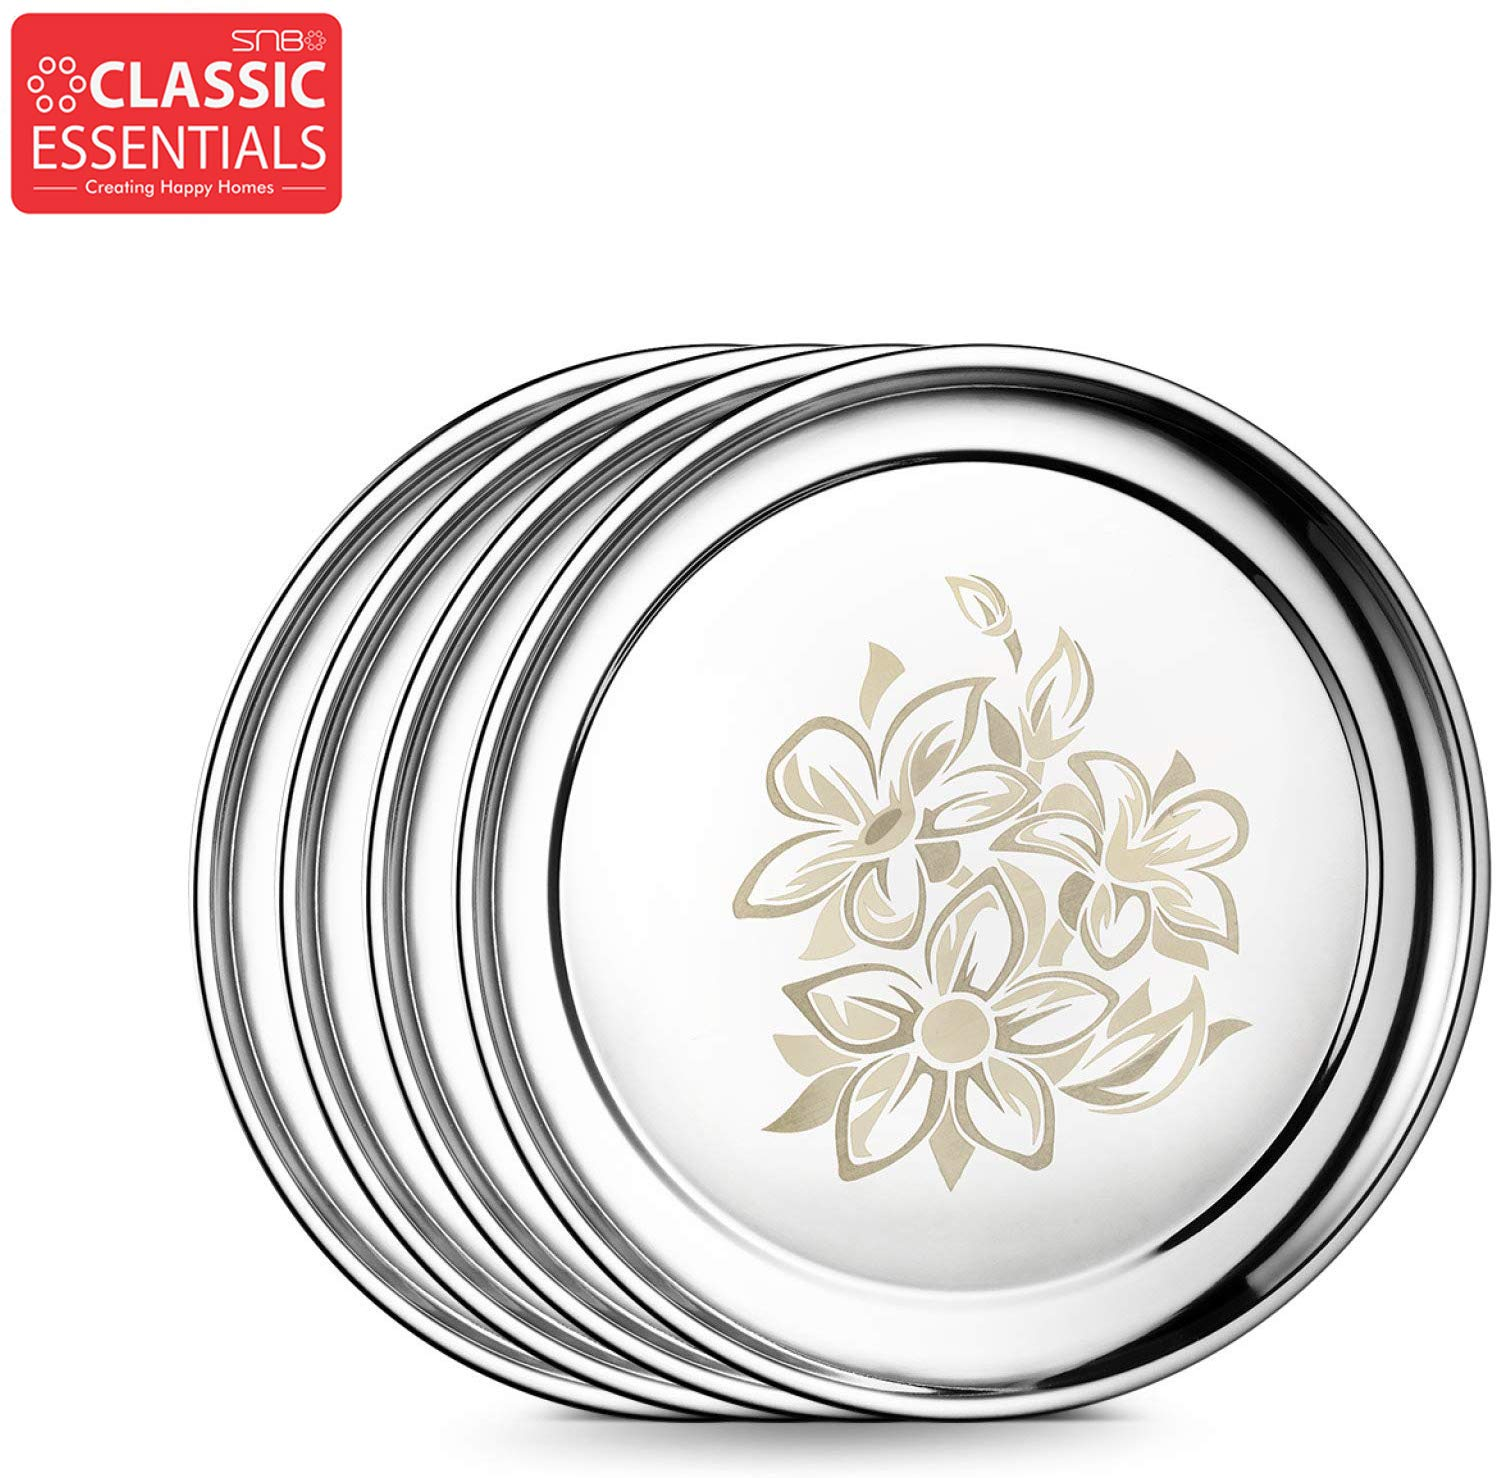 Classic Essential Stainless Steel Glory Dinner Set, 28-Pcs, Silver